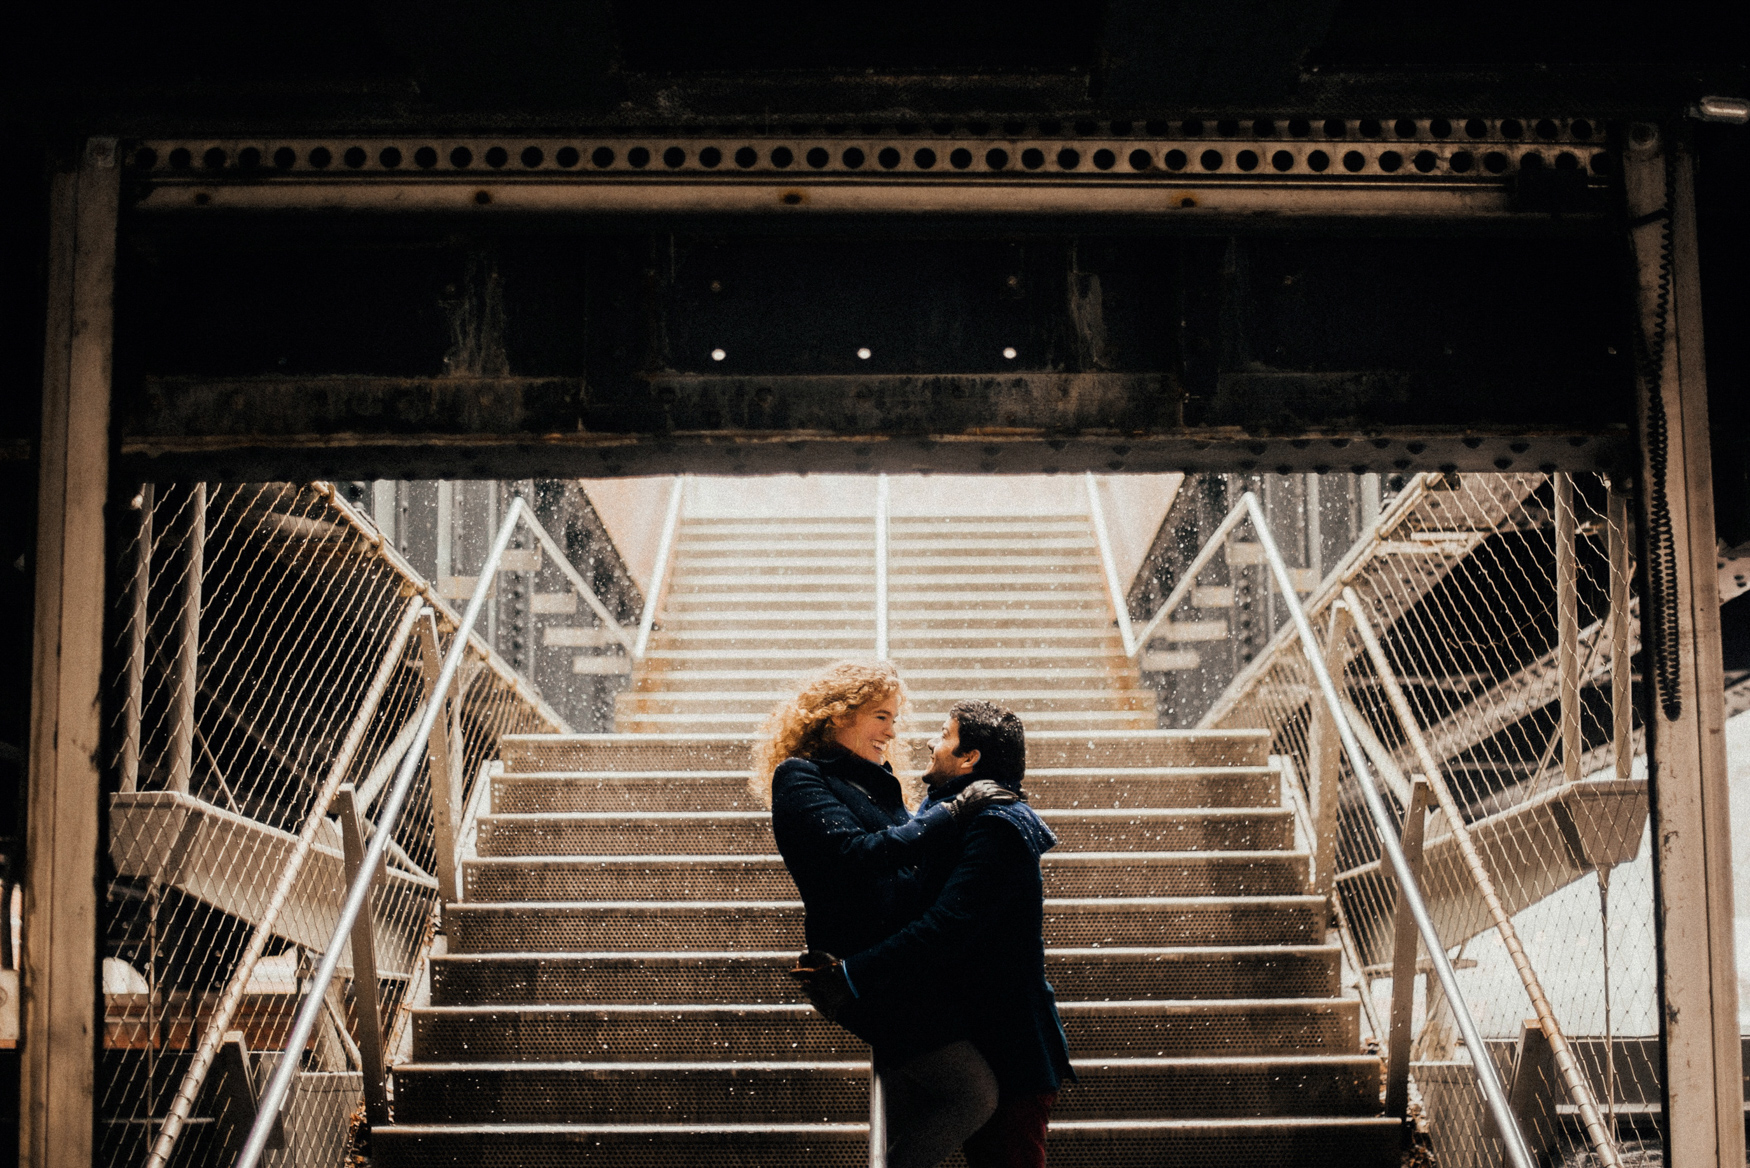 nyc winter snowy manthattan engagement session 011.jpg